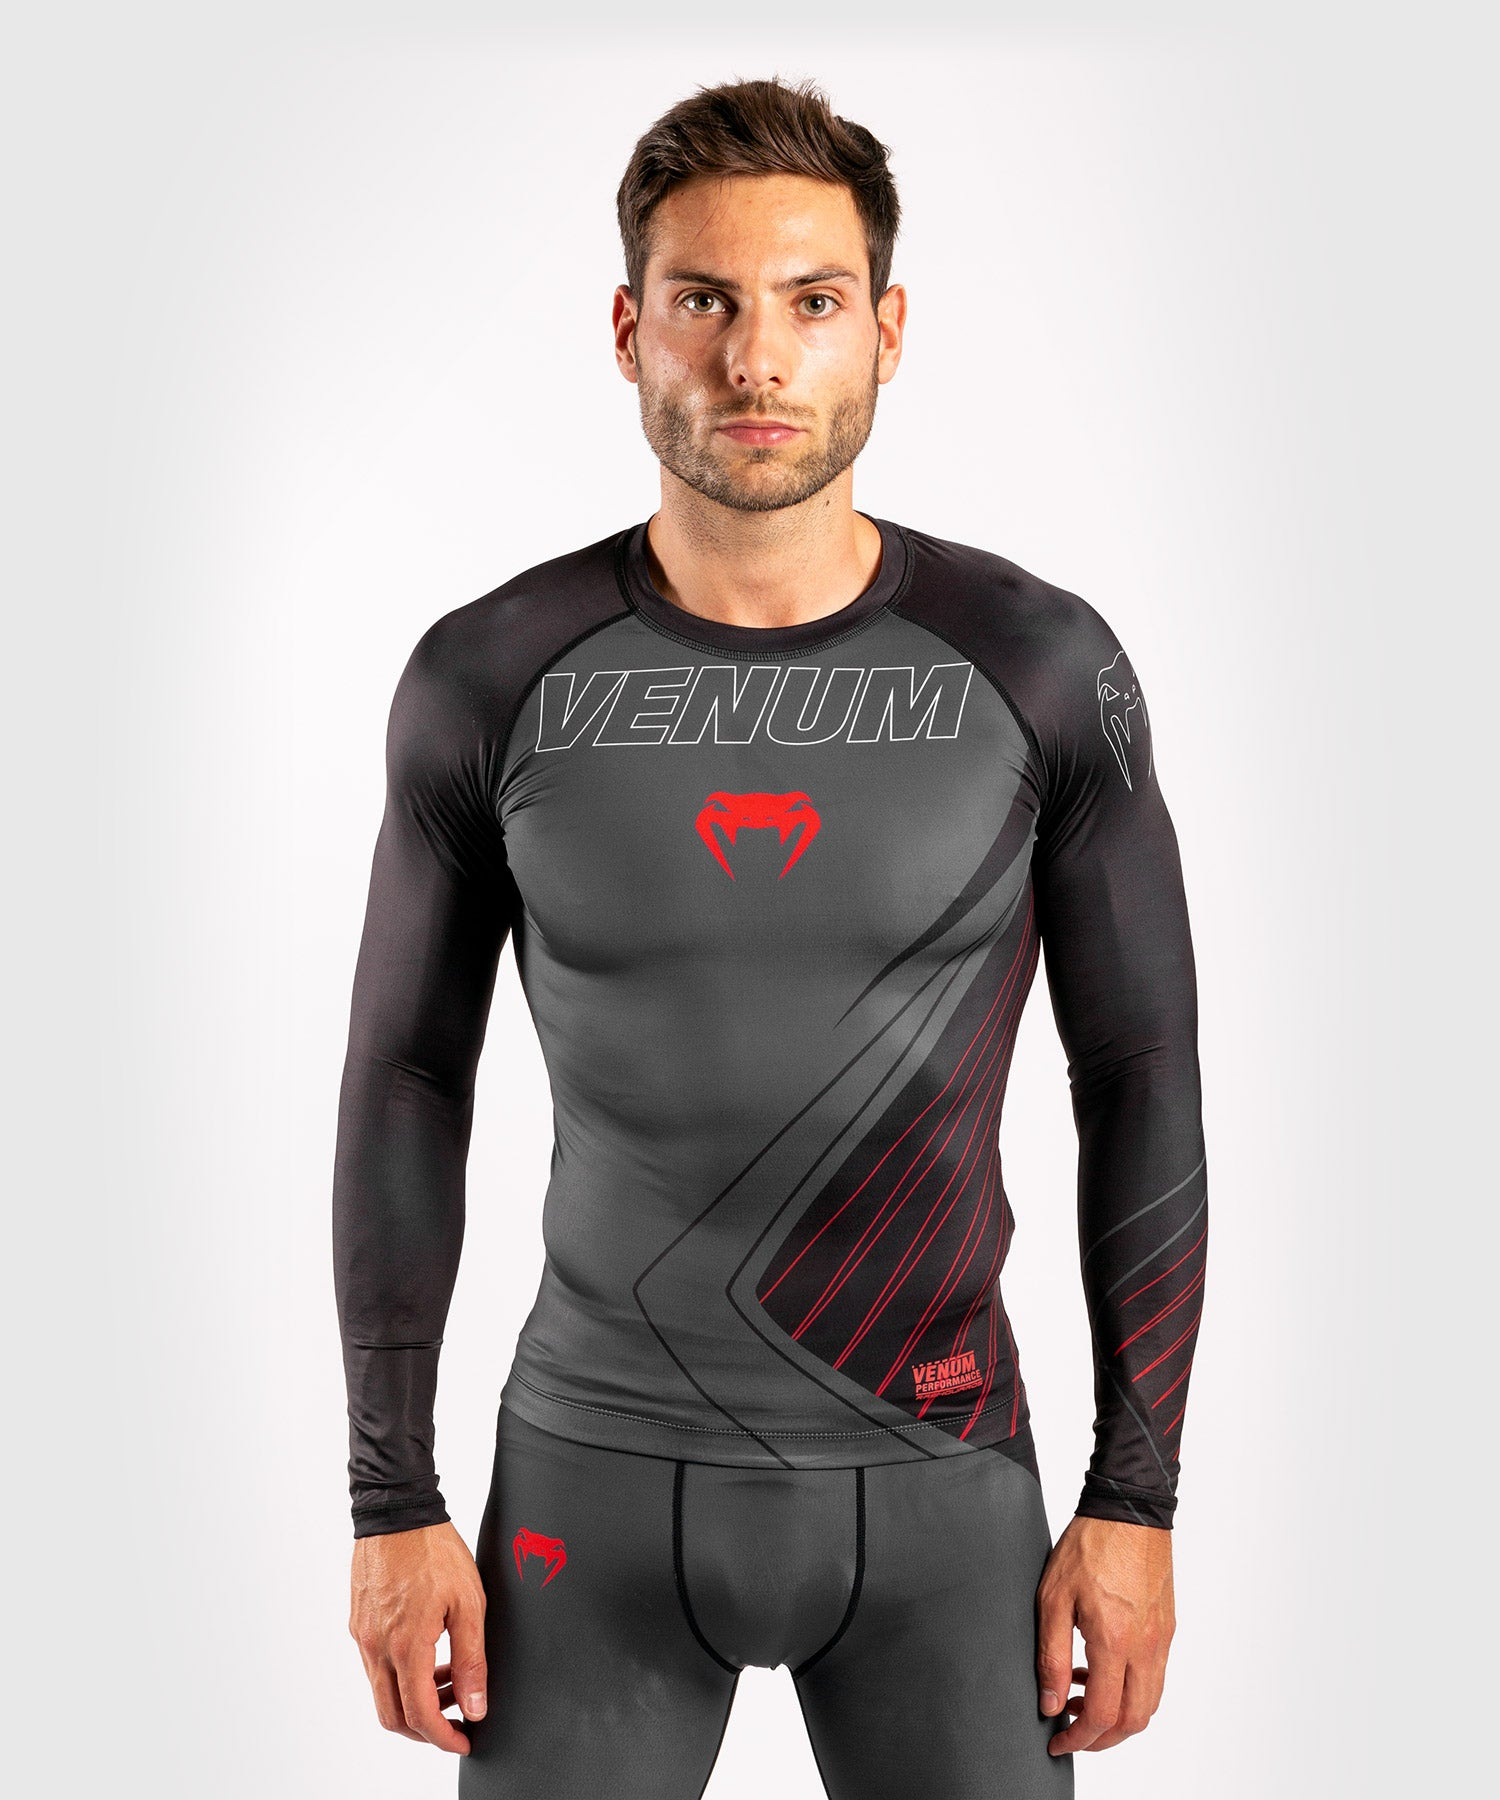 Venum Contender 5.0 Rashguard - Long sleeves - Black/Red picture 1